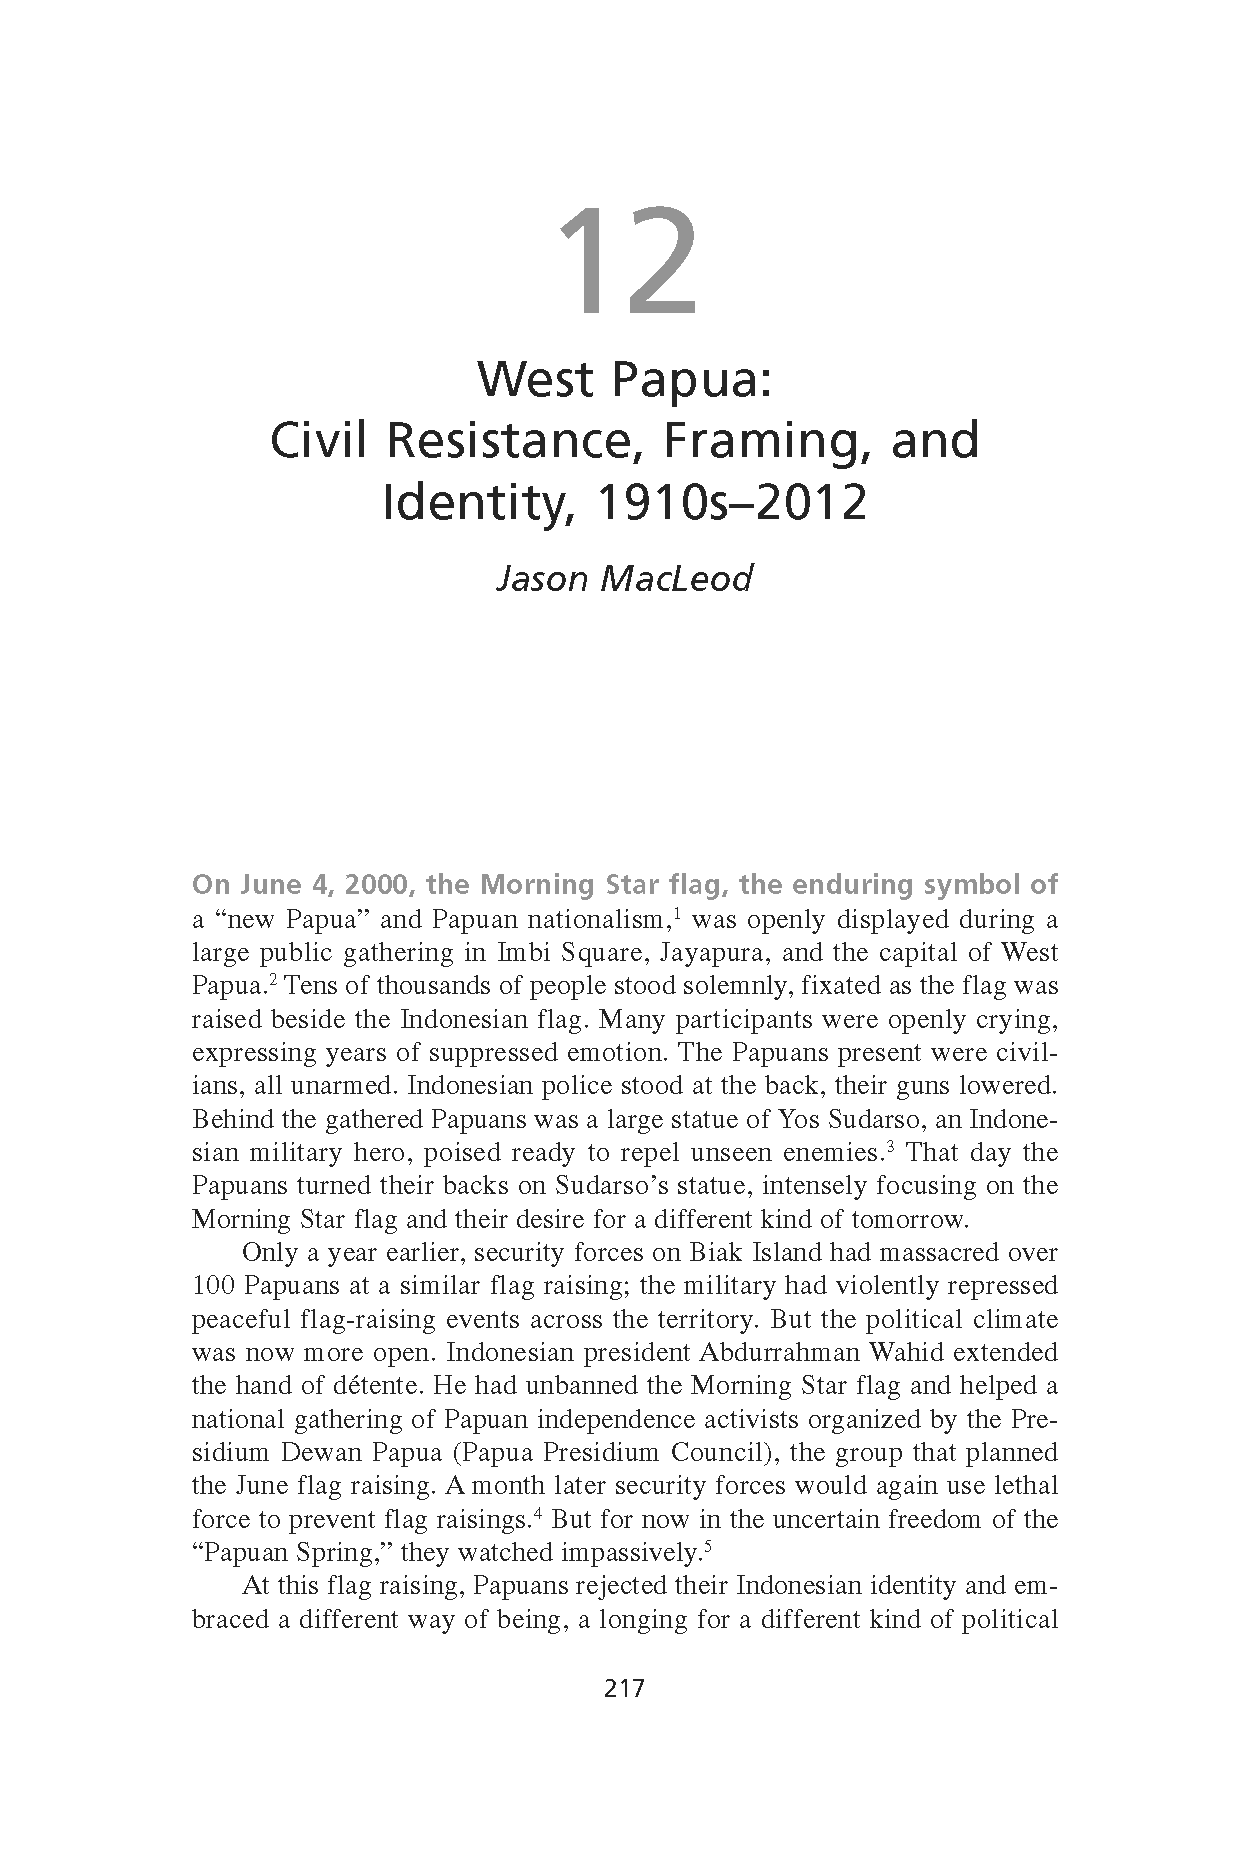 West Papua: Civil Resistance, Framing, and Identity, 1910s-2012 (Chapter 12 from 'Recovering Nonviolent History')